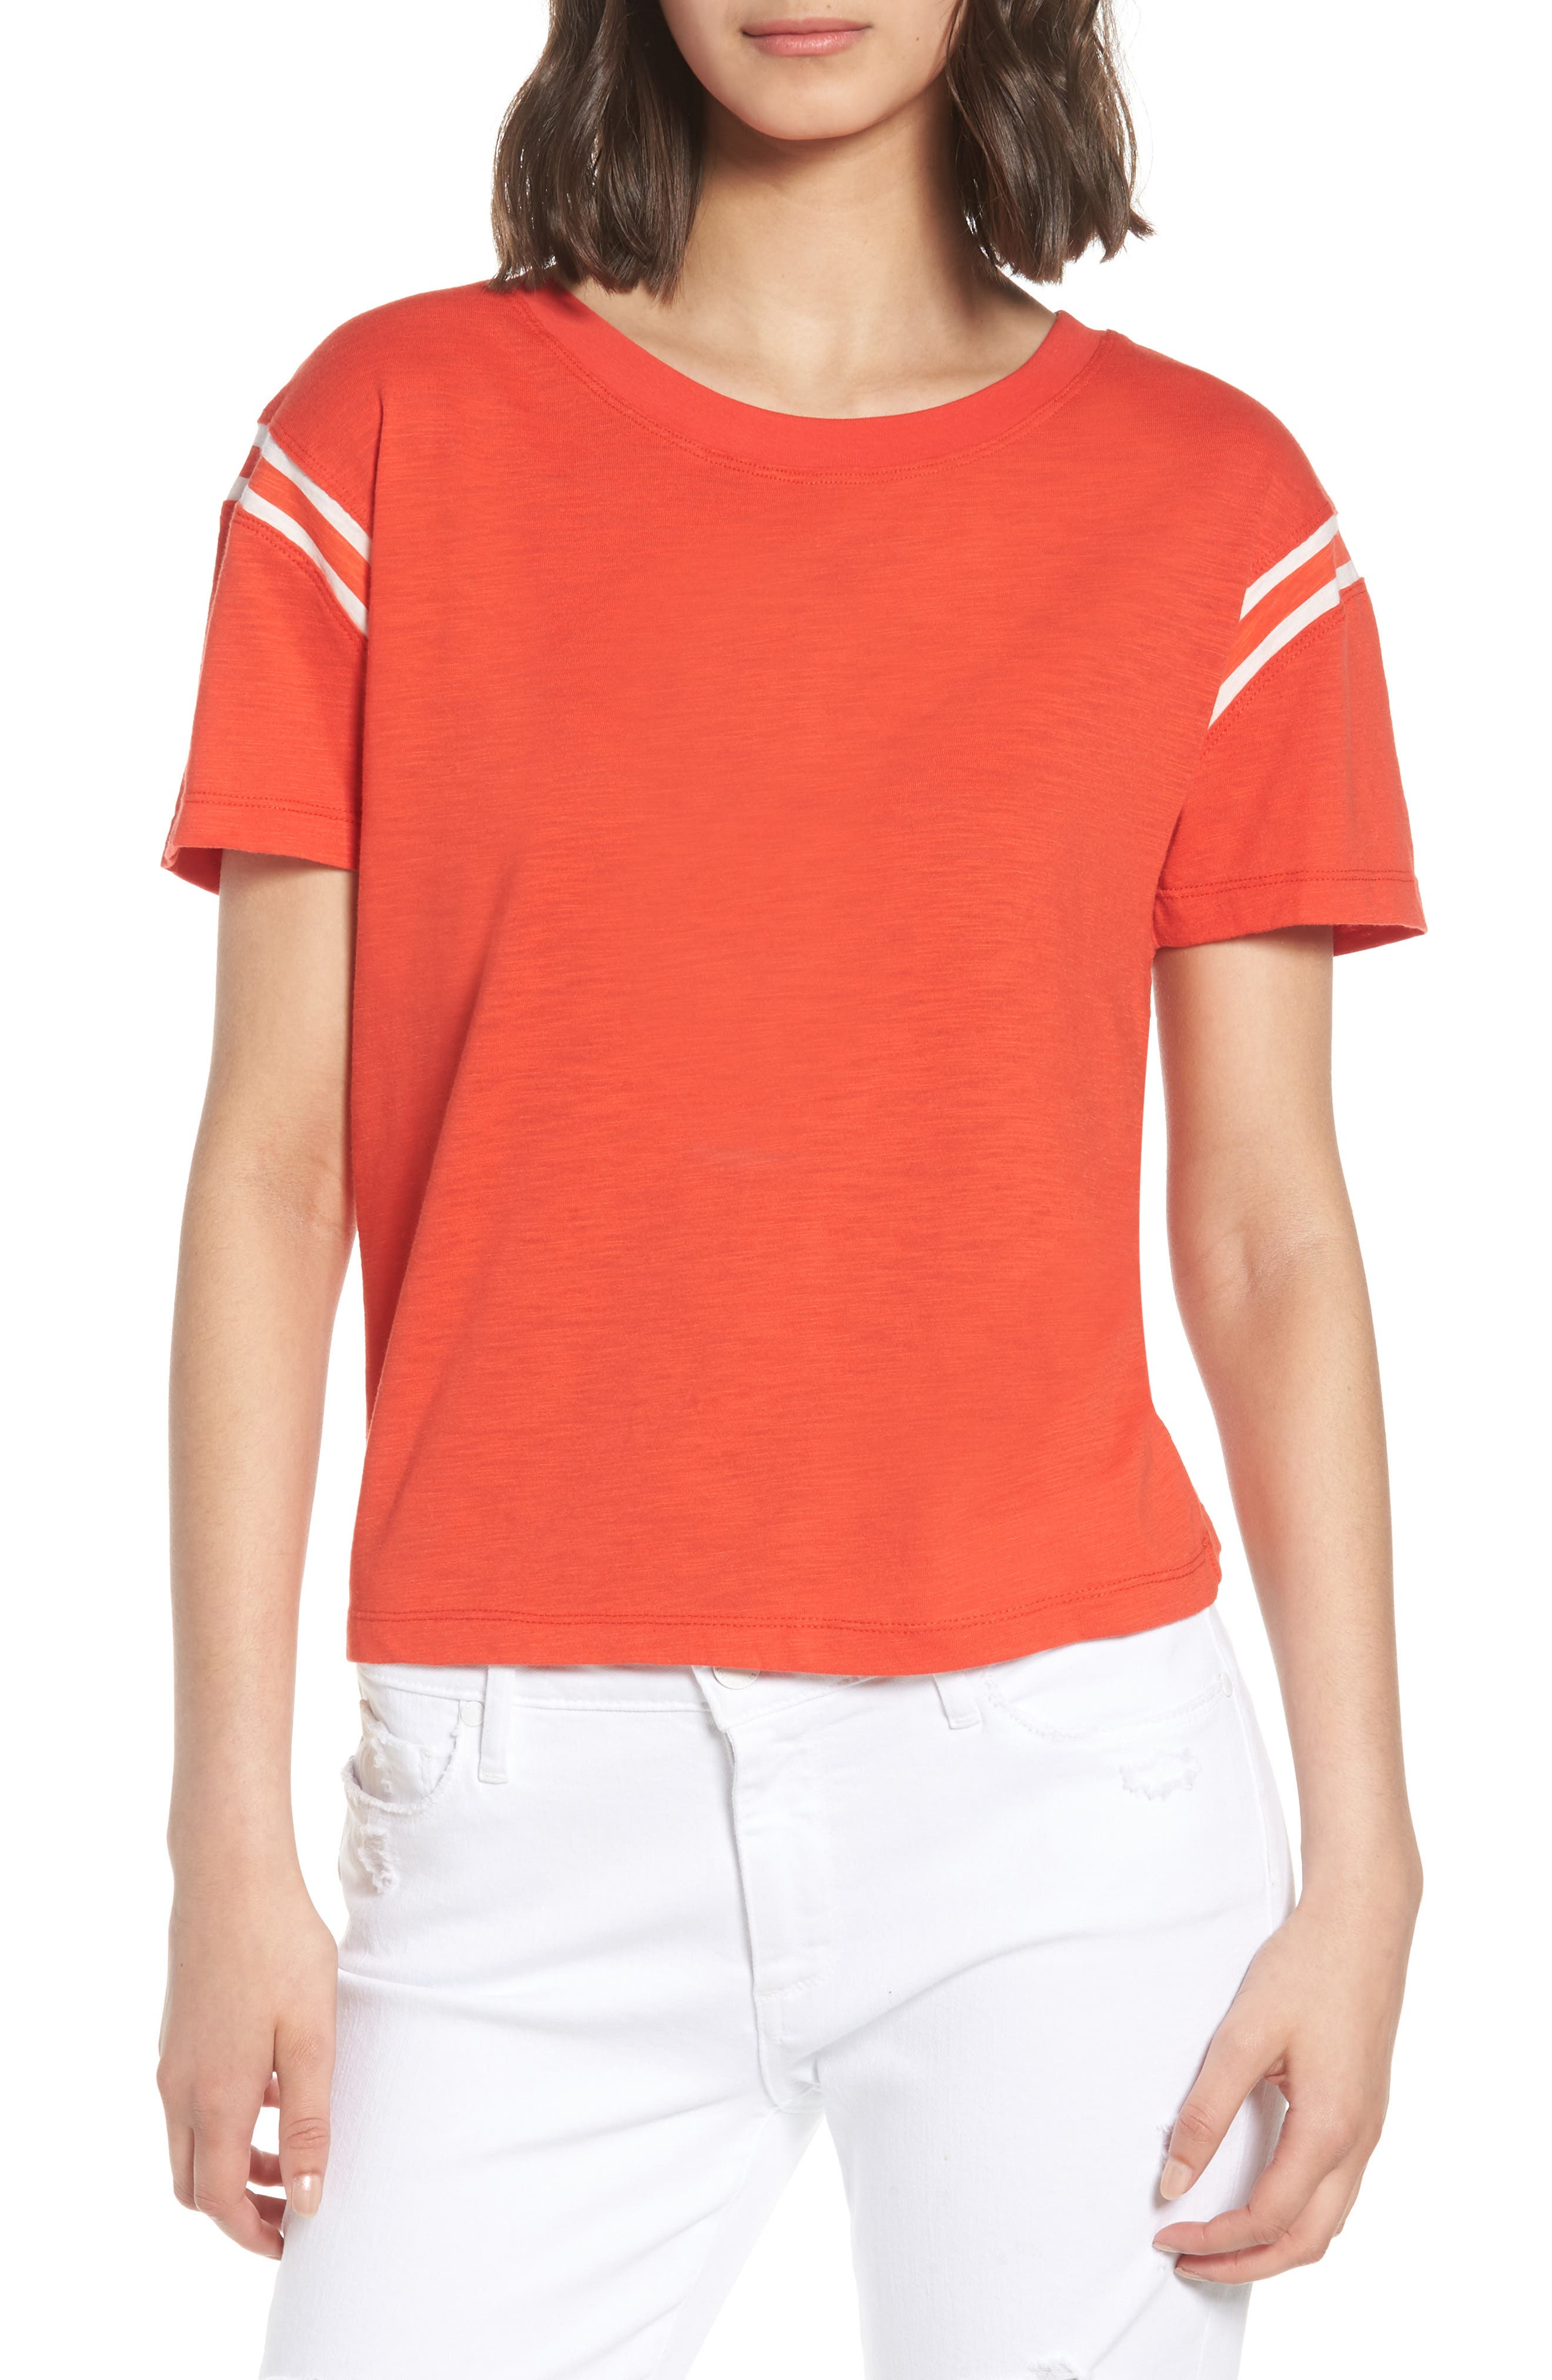 Football Tee,                         Main,                         color, CANDY RED